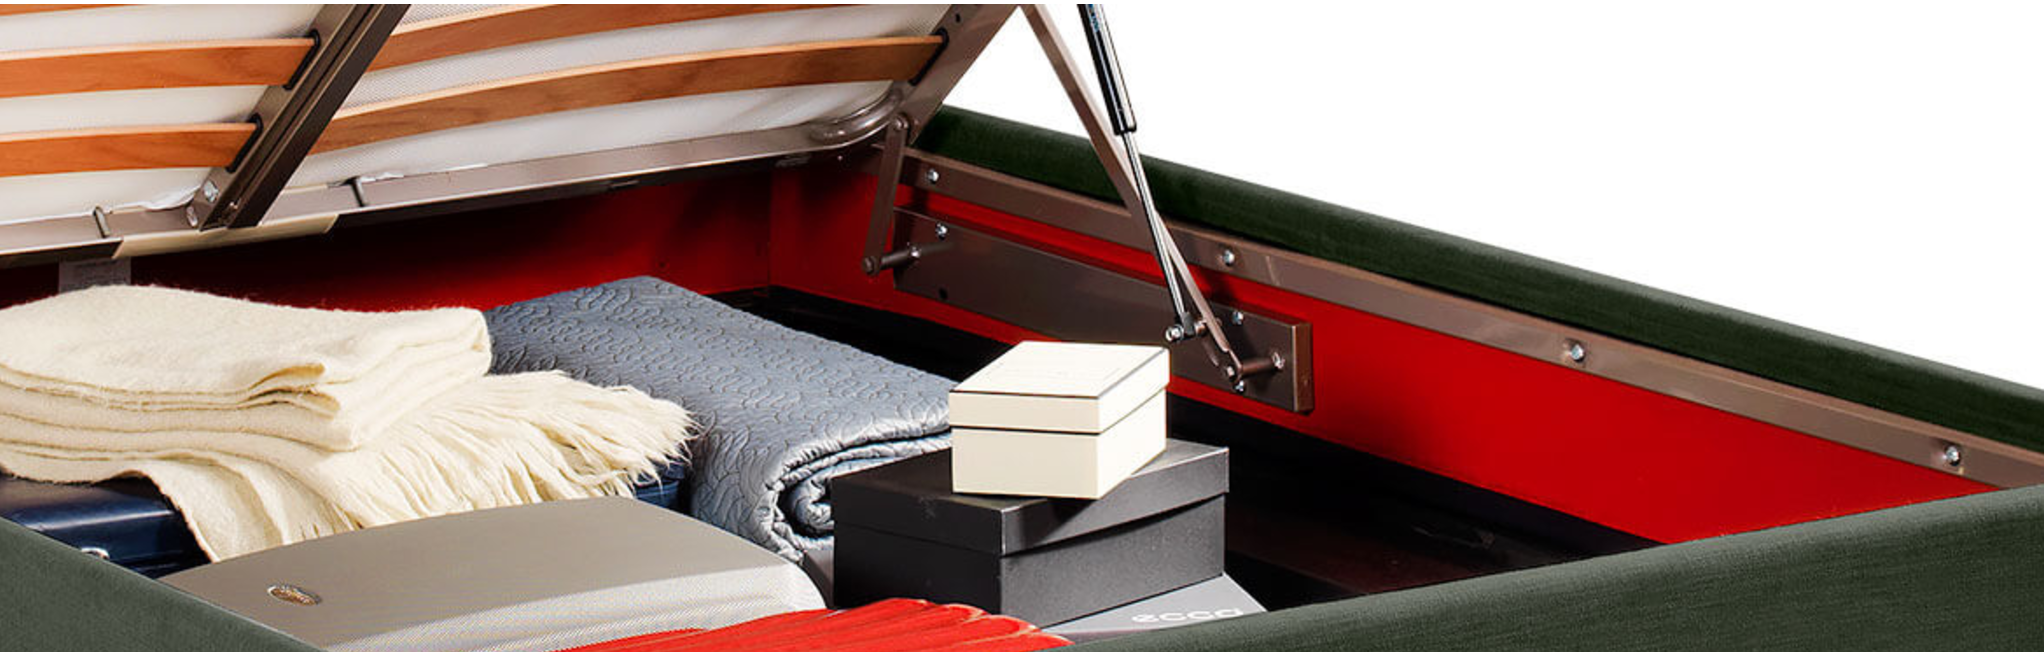 storage bed experts